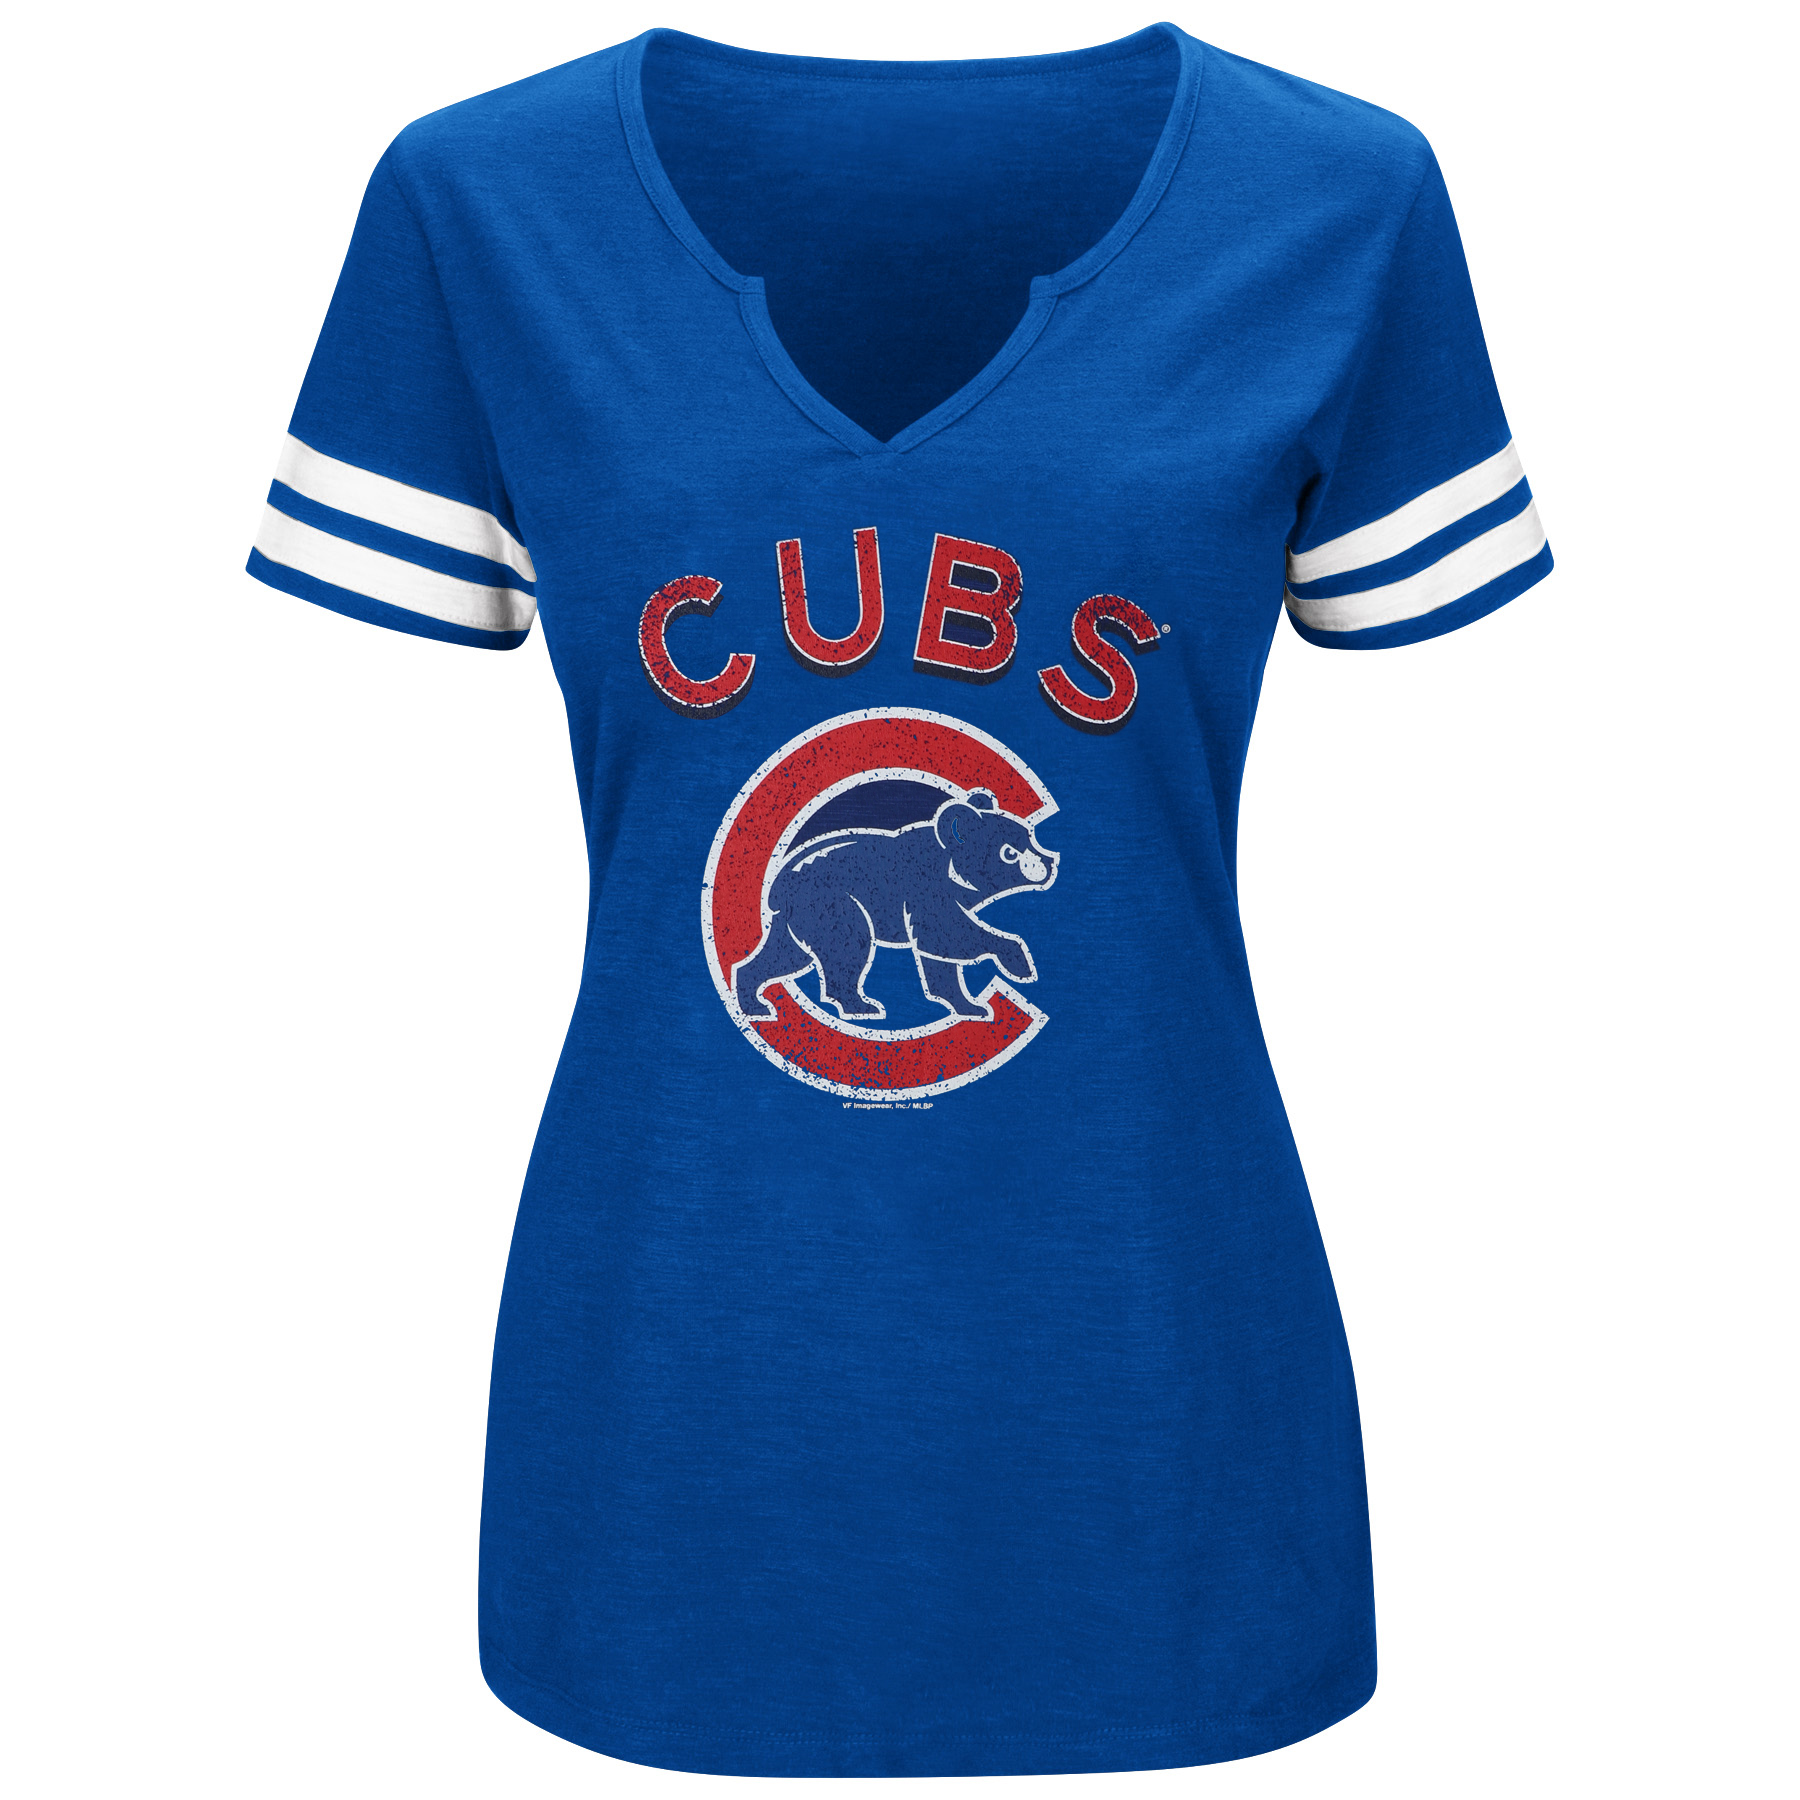 Women's Majestic Royal/White Chicago Cubs Decisive Moment V-Notch T-Shirt